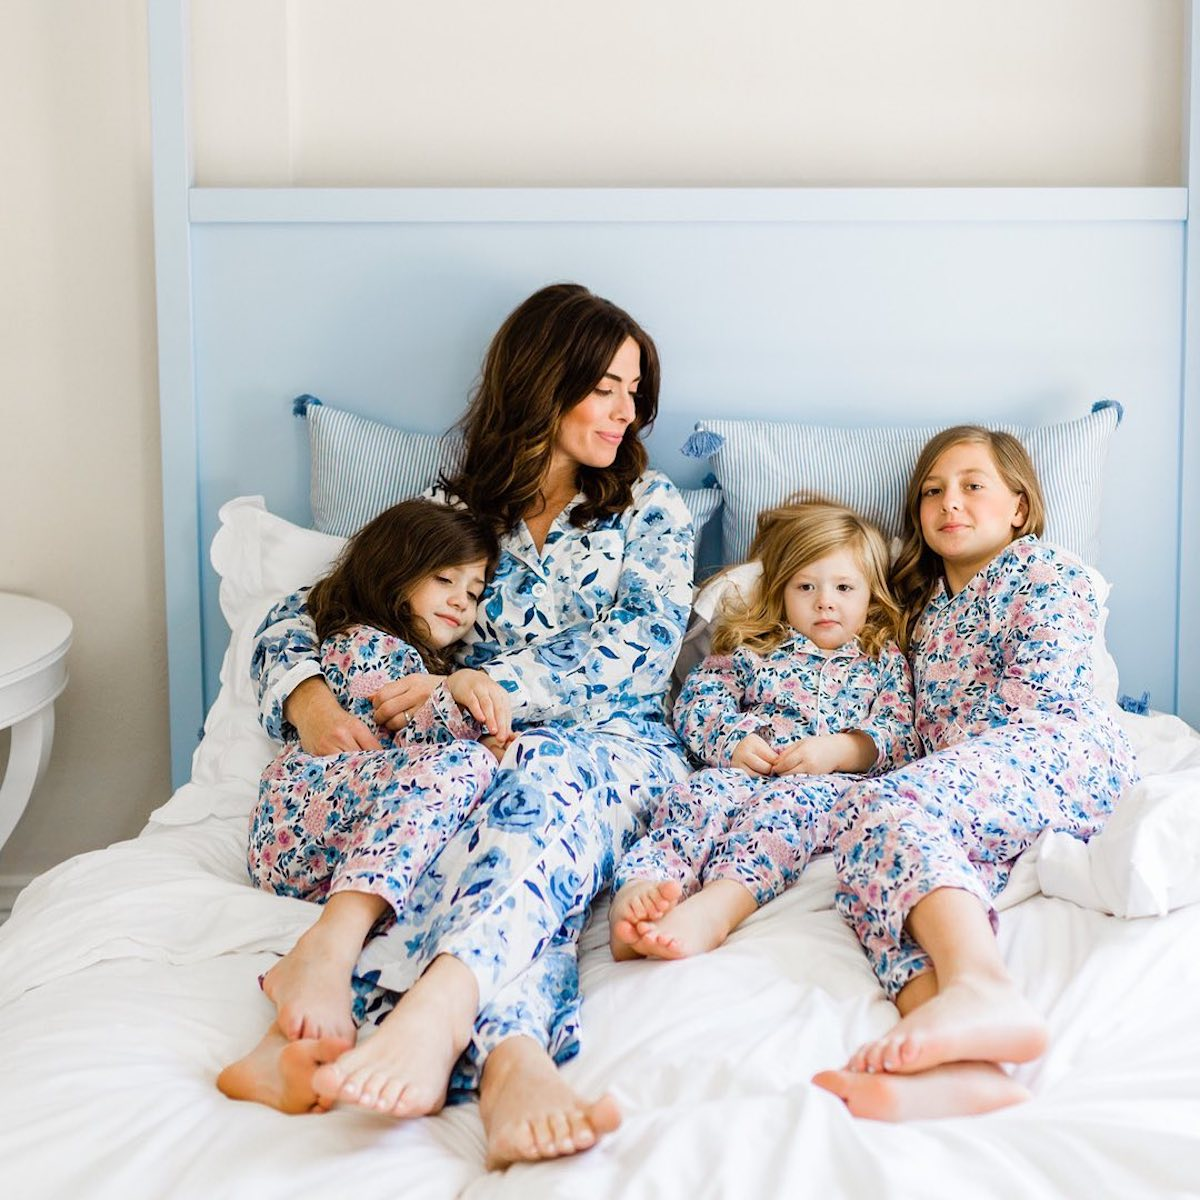 Designer Caitlin Wilson and her children in a blue Cait Kids bed